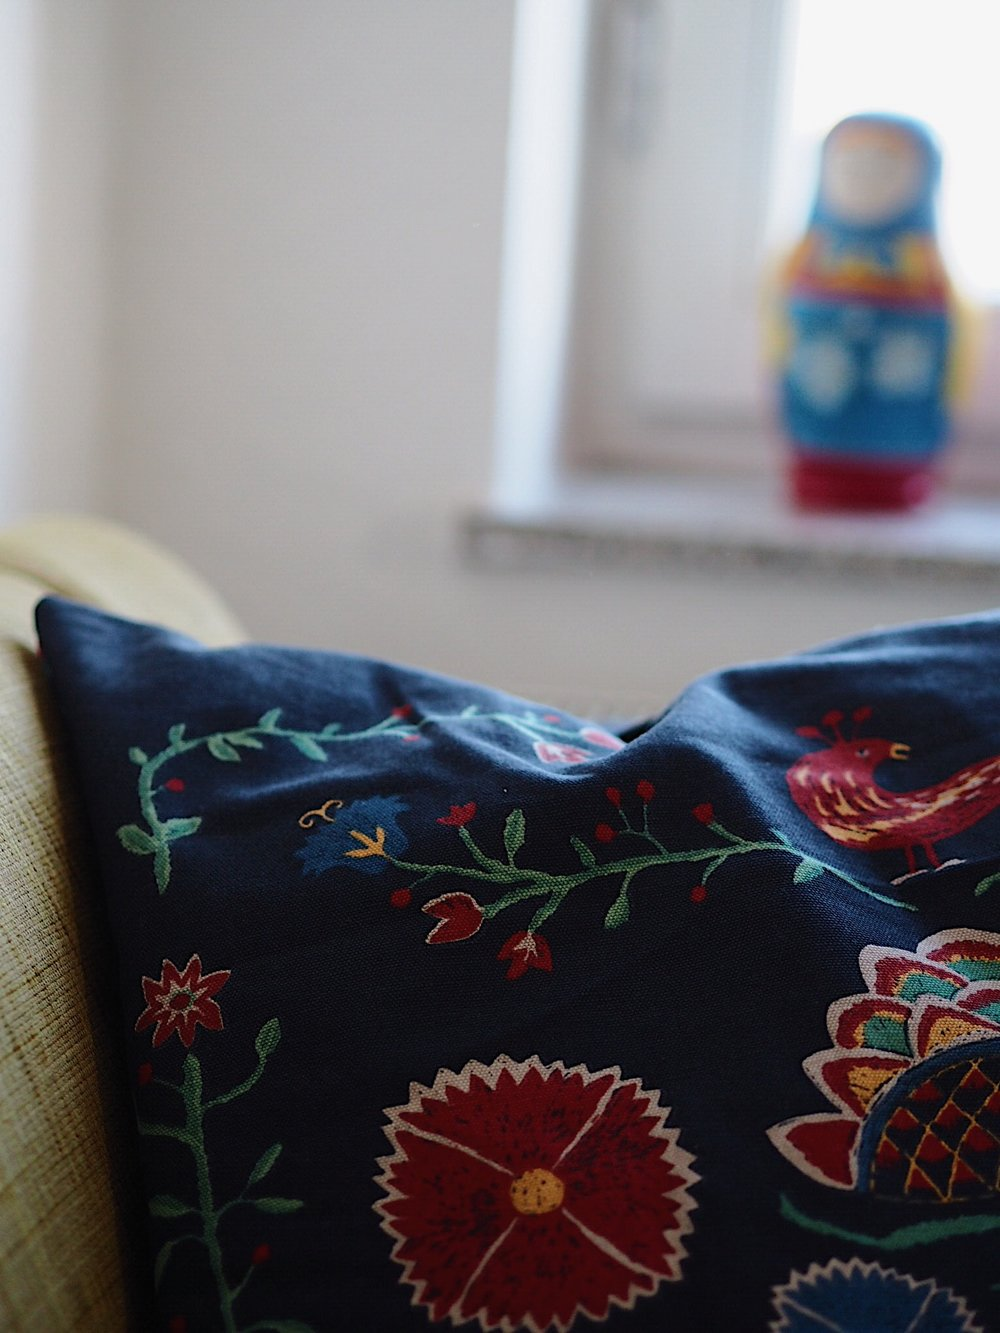 embroidered pillows and matryoshka